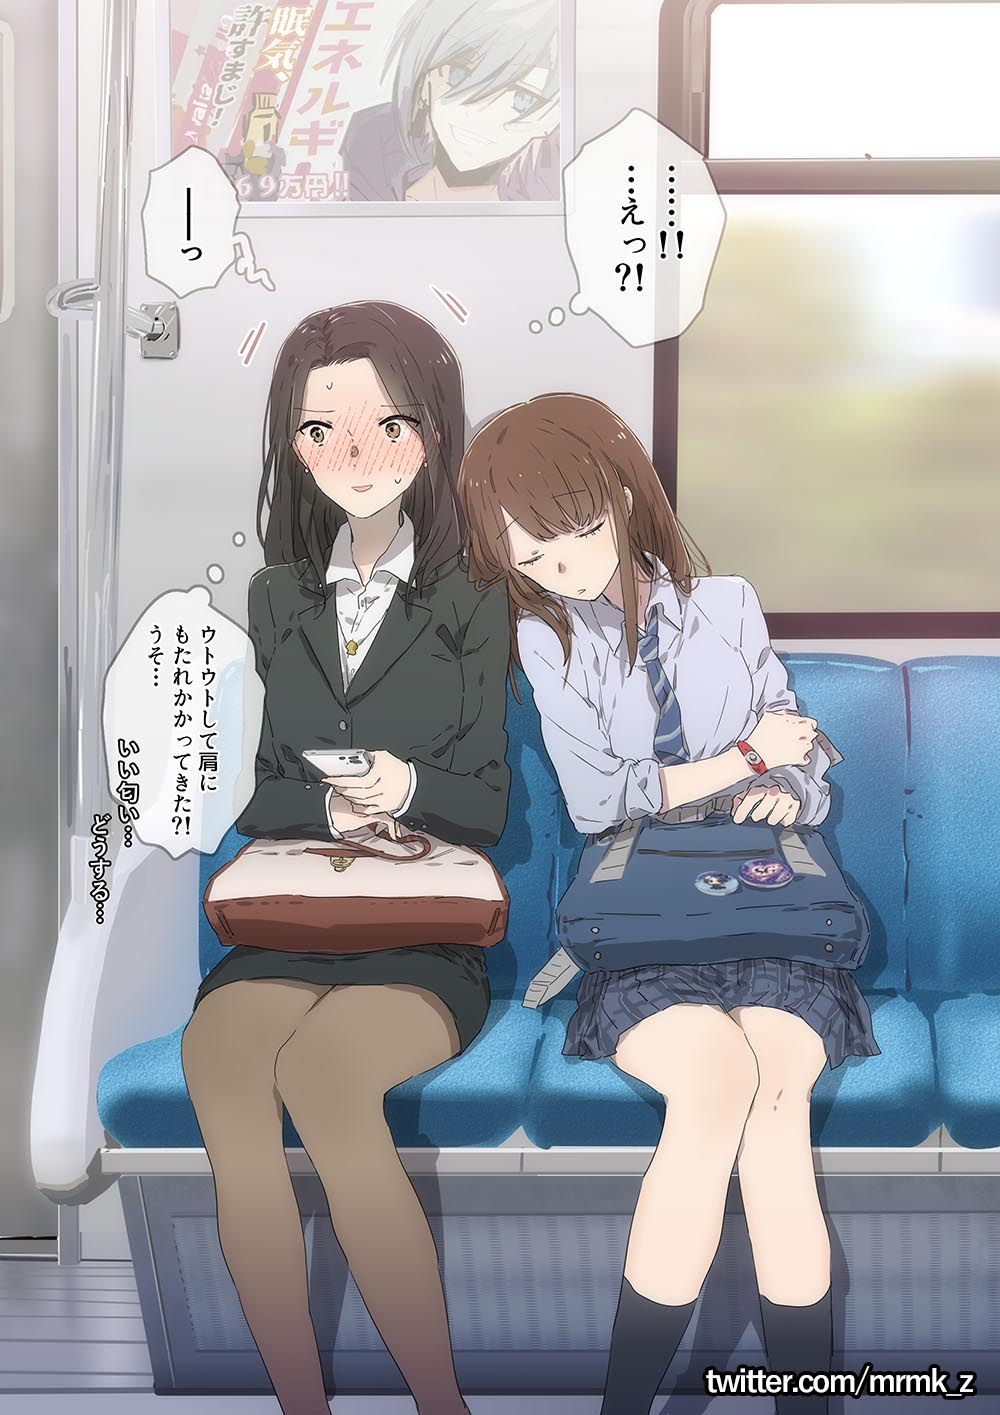 age_difference bag black_hair blush brown_hair cellphone flying_sweatdrops ground_vehicle handbag highres leaning_on_person leaning_to_the_side multiple_girls muromaki necktie office_lady original pantyhose phone poster_(object) school_uniform short_hair sitting skirt sleeping sleeves_rolled_up smartphone sweat train train_interior translation_request yuri